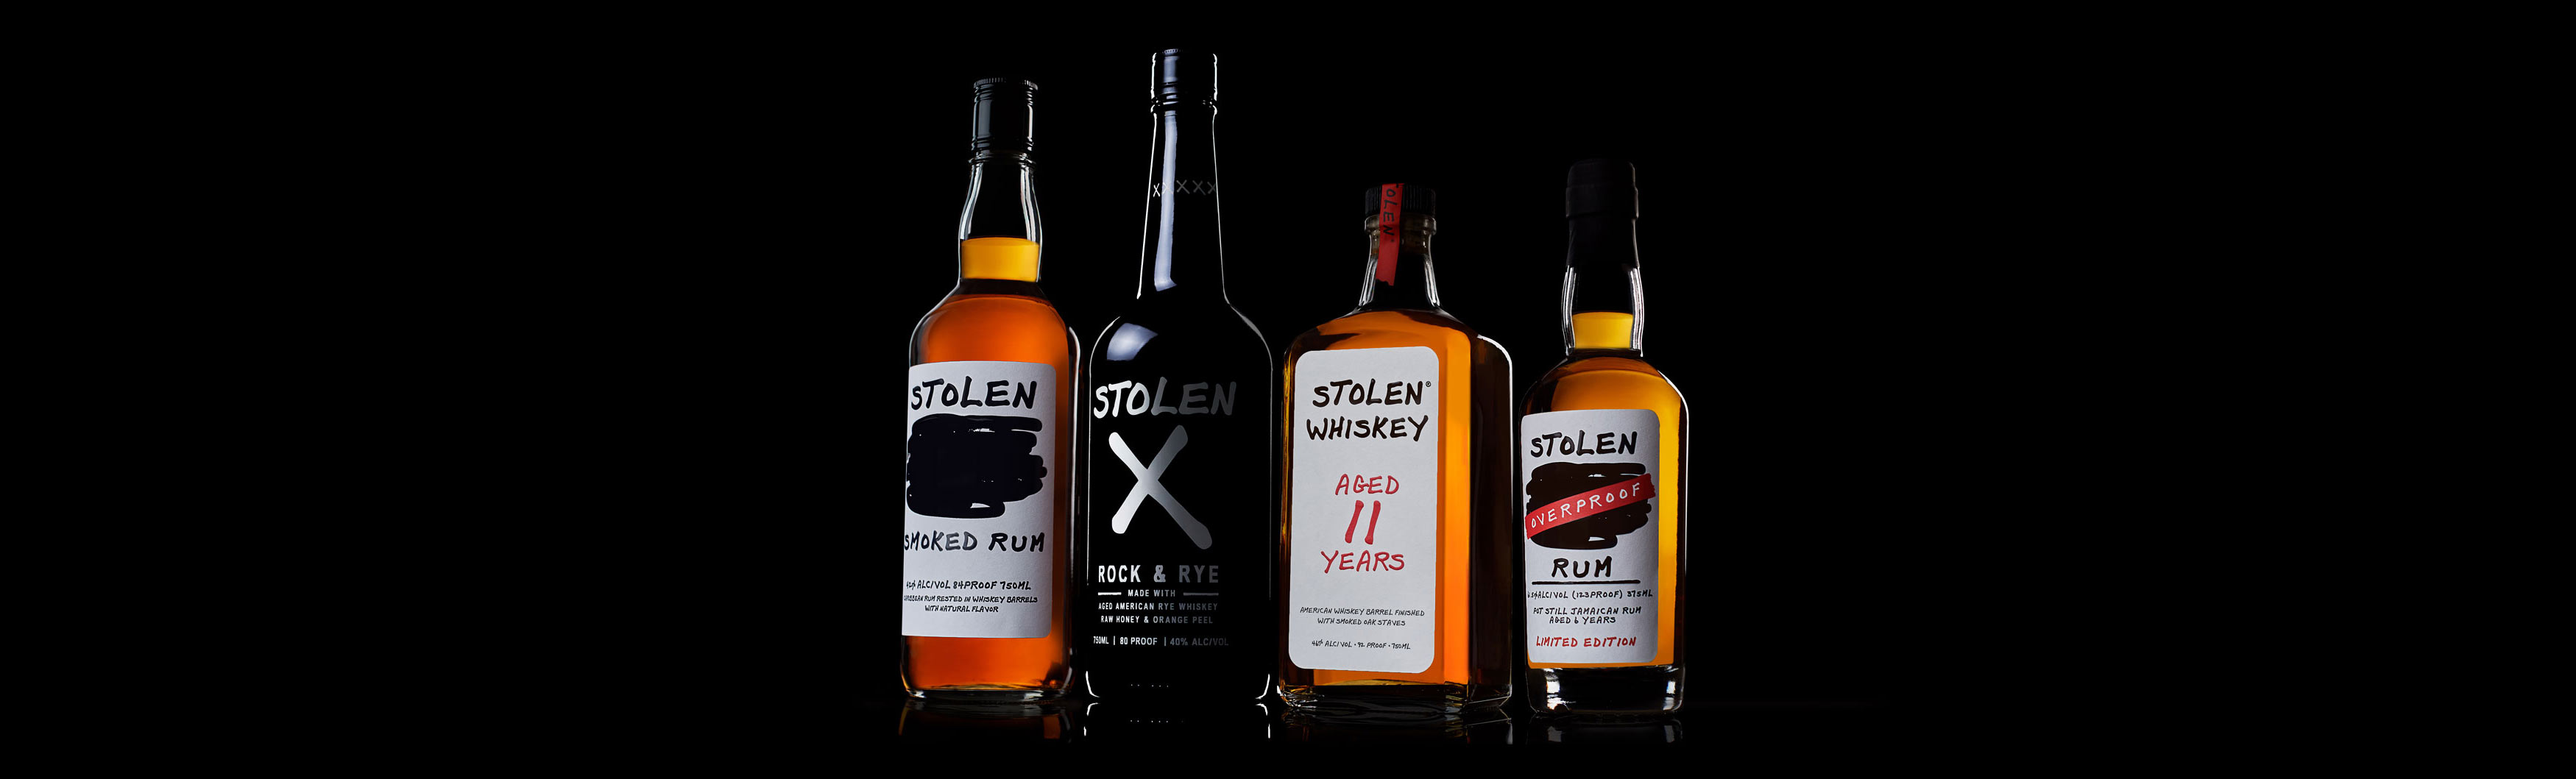 Stolen Smoked Rum Stolen X Rock & Rye 11-year aged American Whiskey and Overproof Rum